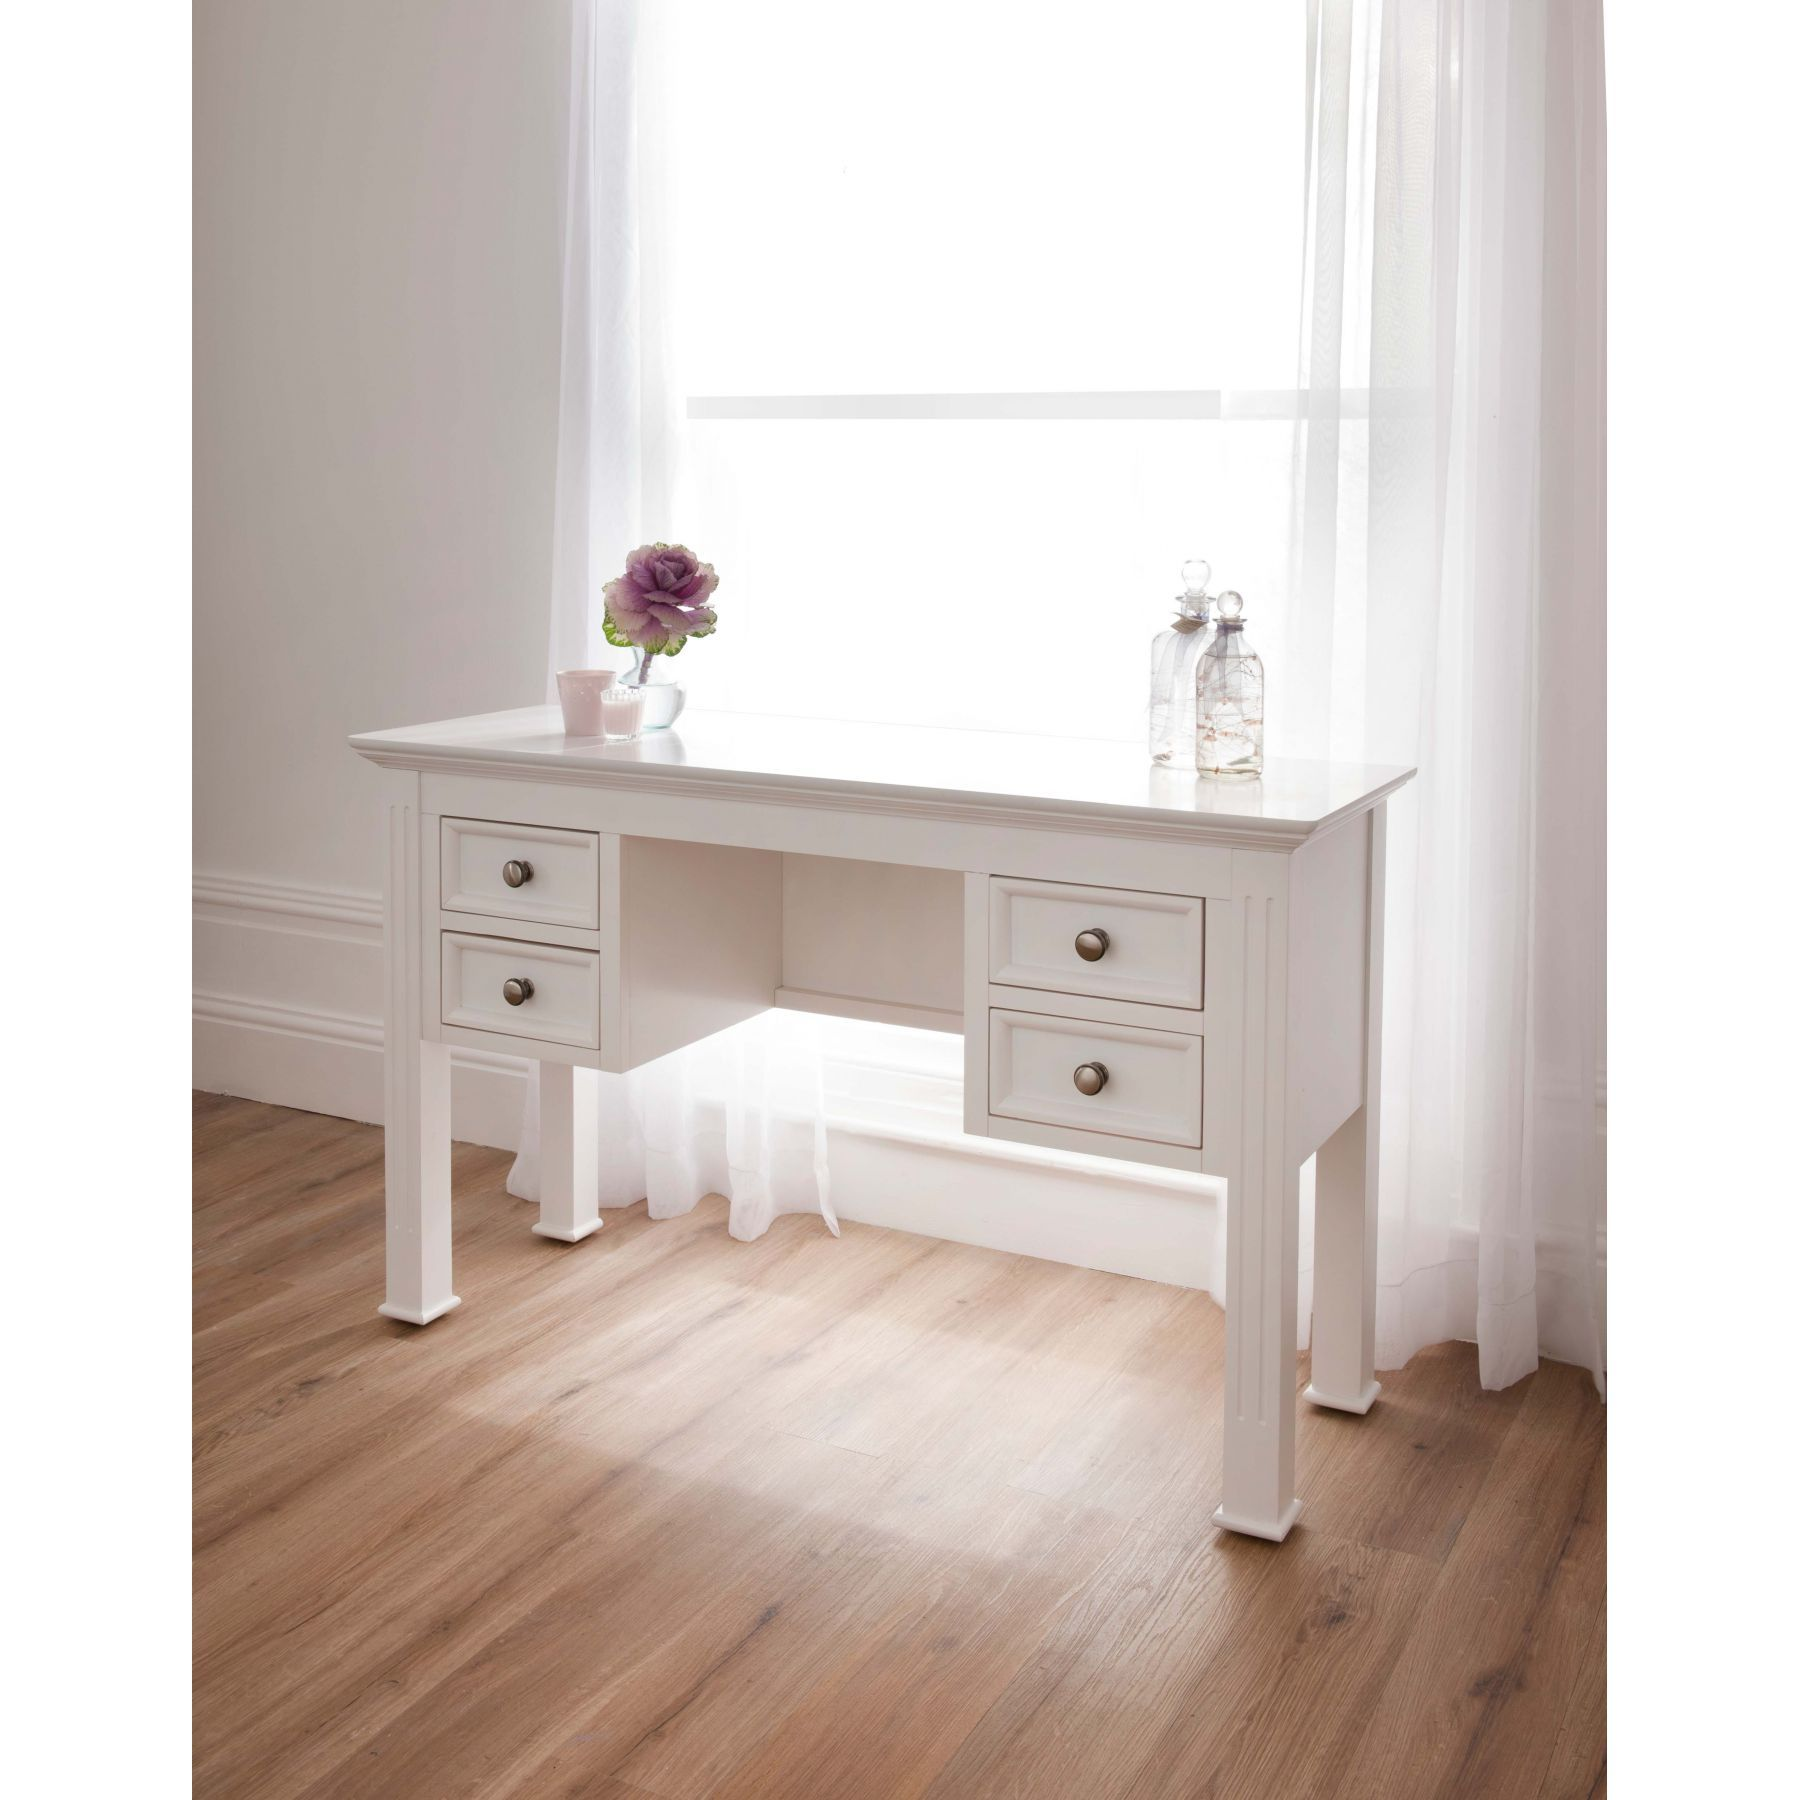 Sophia Shabby Chic Dressing Table Works Well Alongside Our Antique French  Furniture